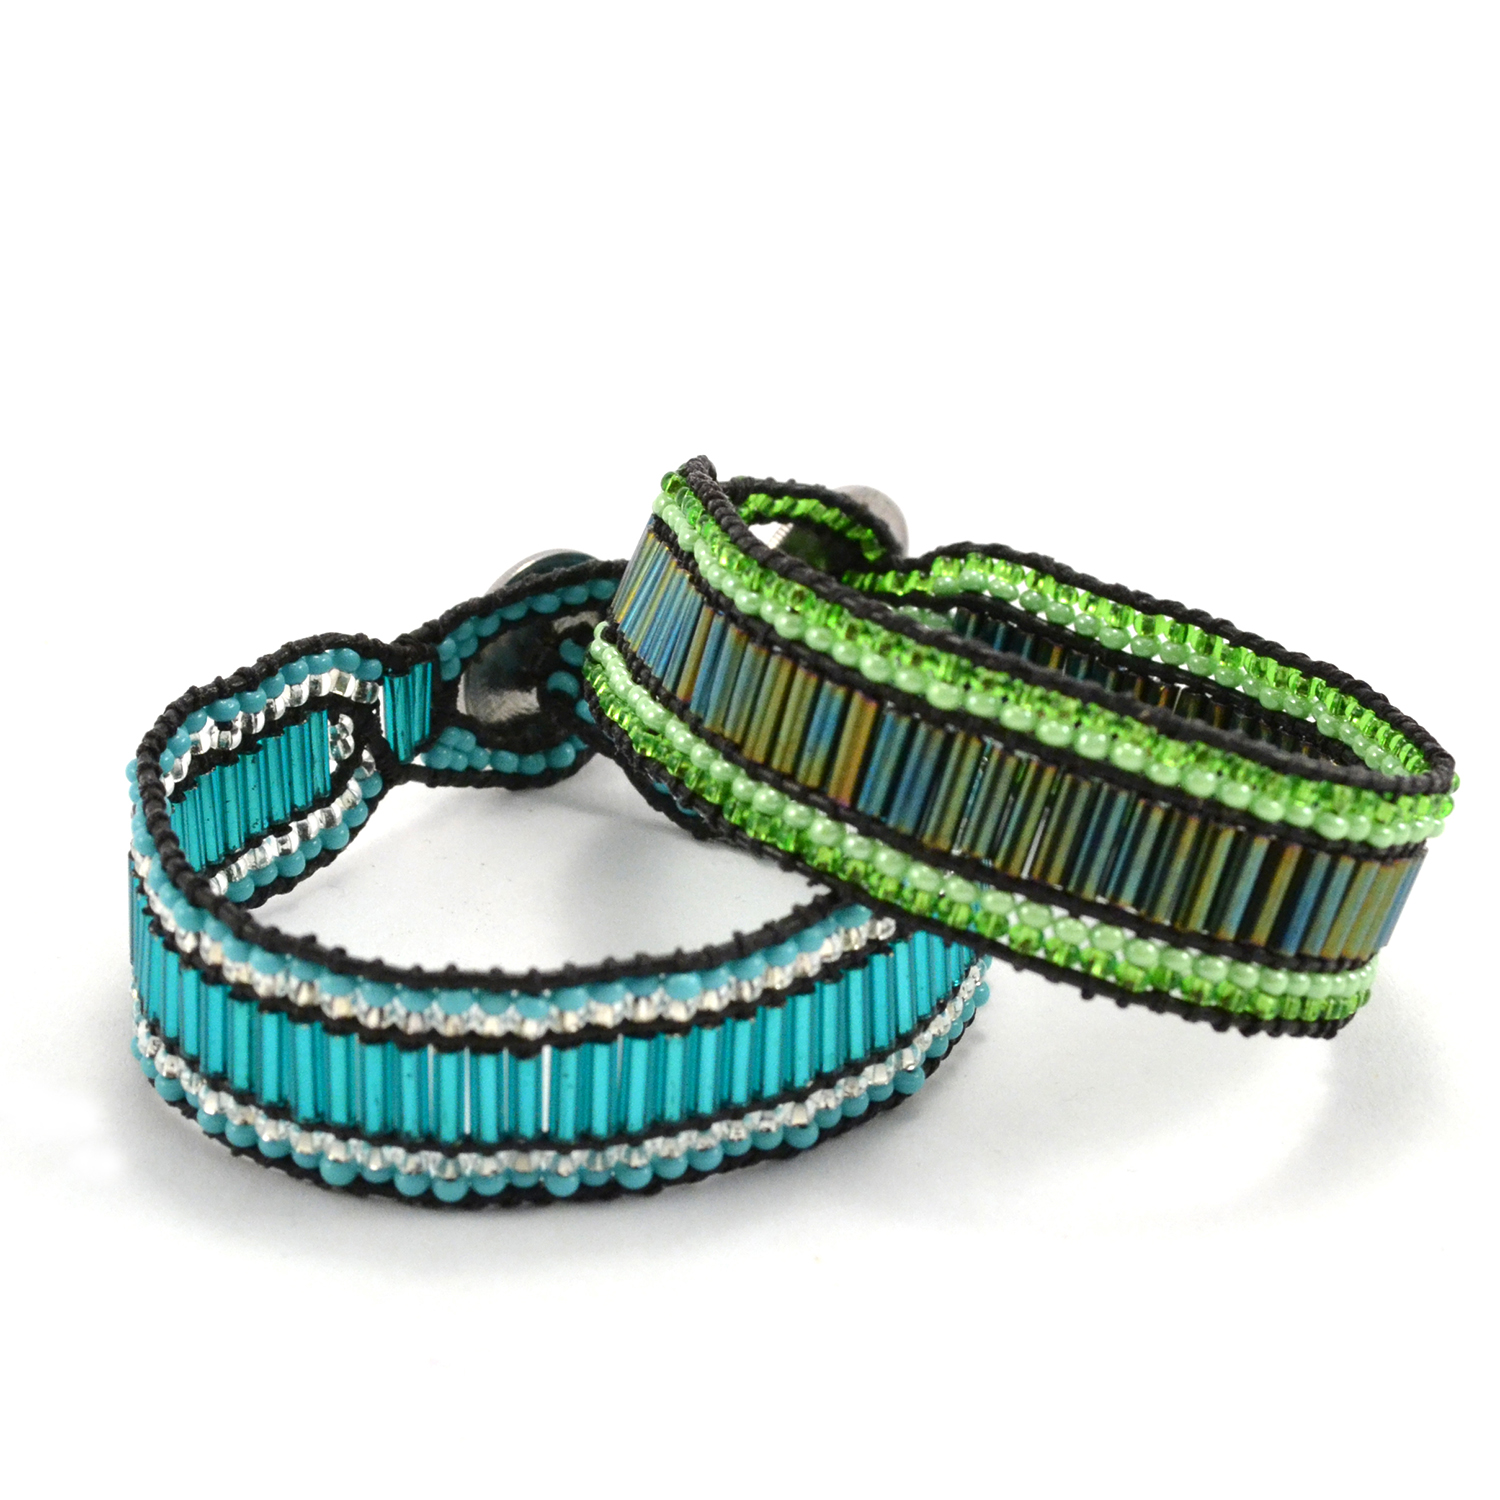 Fair Trade Guatemalan Handmade Jewelery,The Change Cuff Bracelet in turquoise and lime